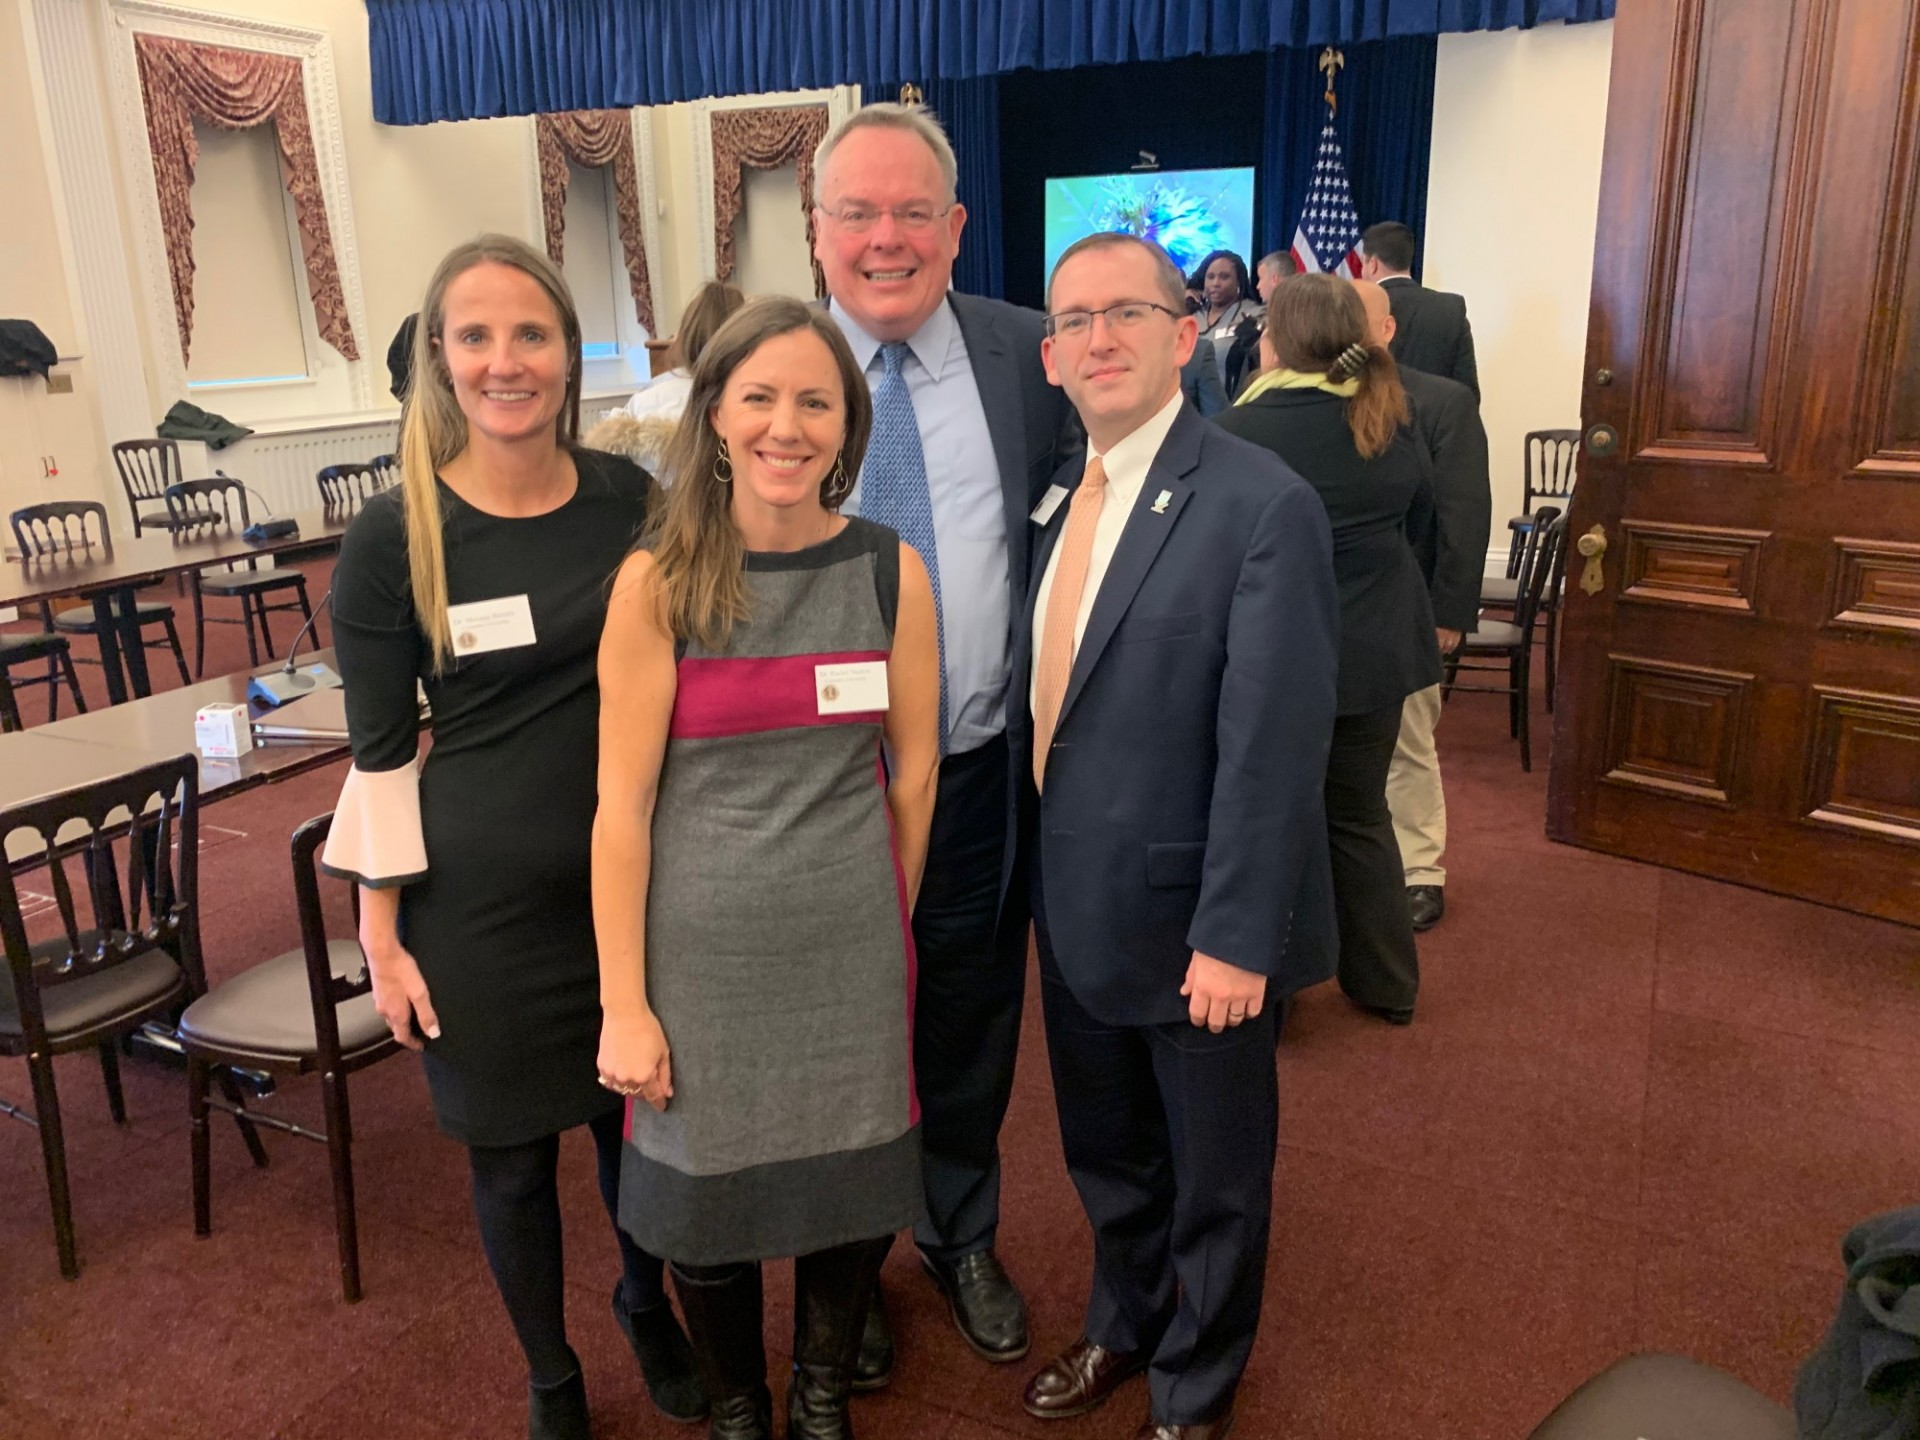 From left to right: Dr. Melanie Bernitz, Columbia Health, Dr. Rachel Shelton, Columbia School of Public Health, Director Jim Carroll, ONDCP, and Dr. Michael McNeil, Columbia Health